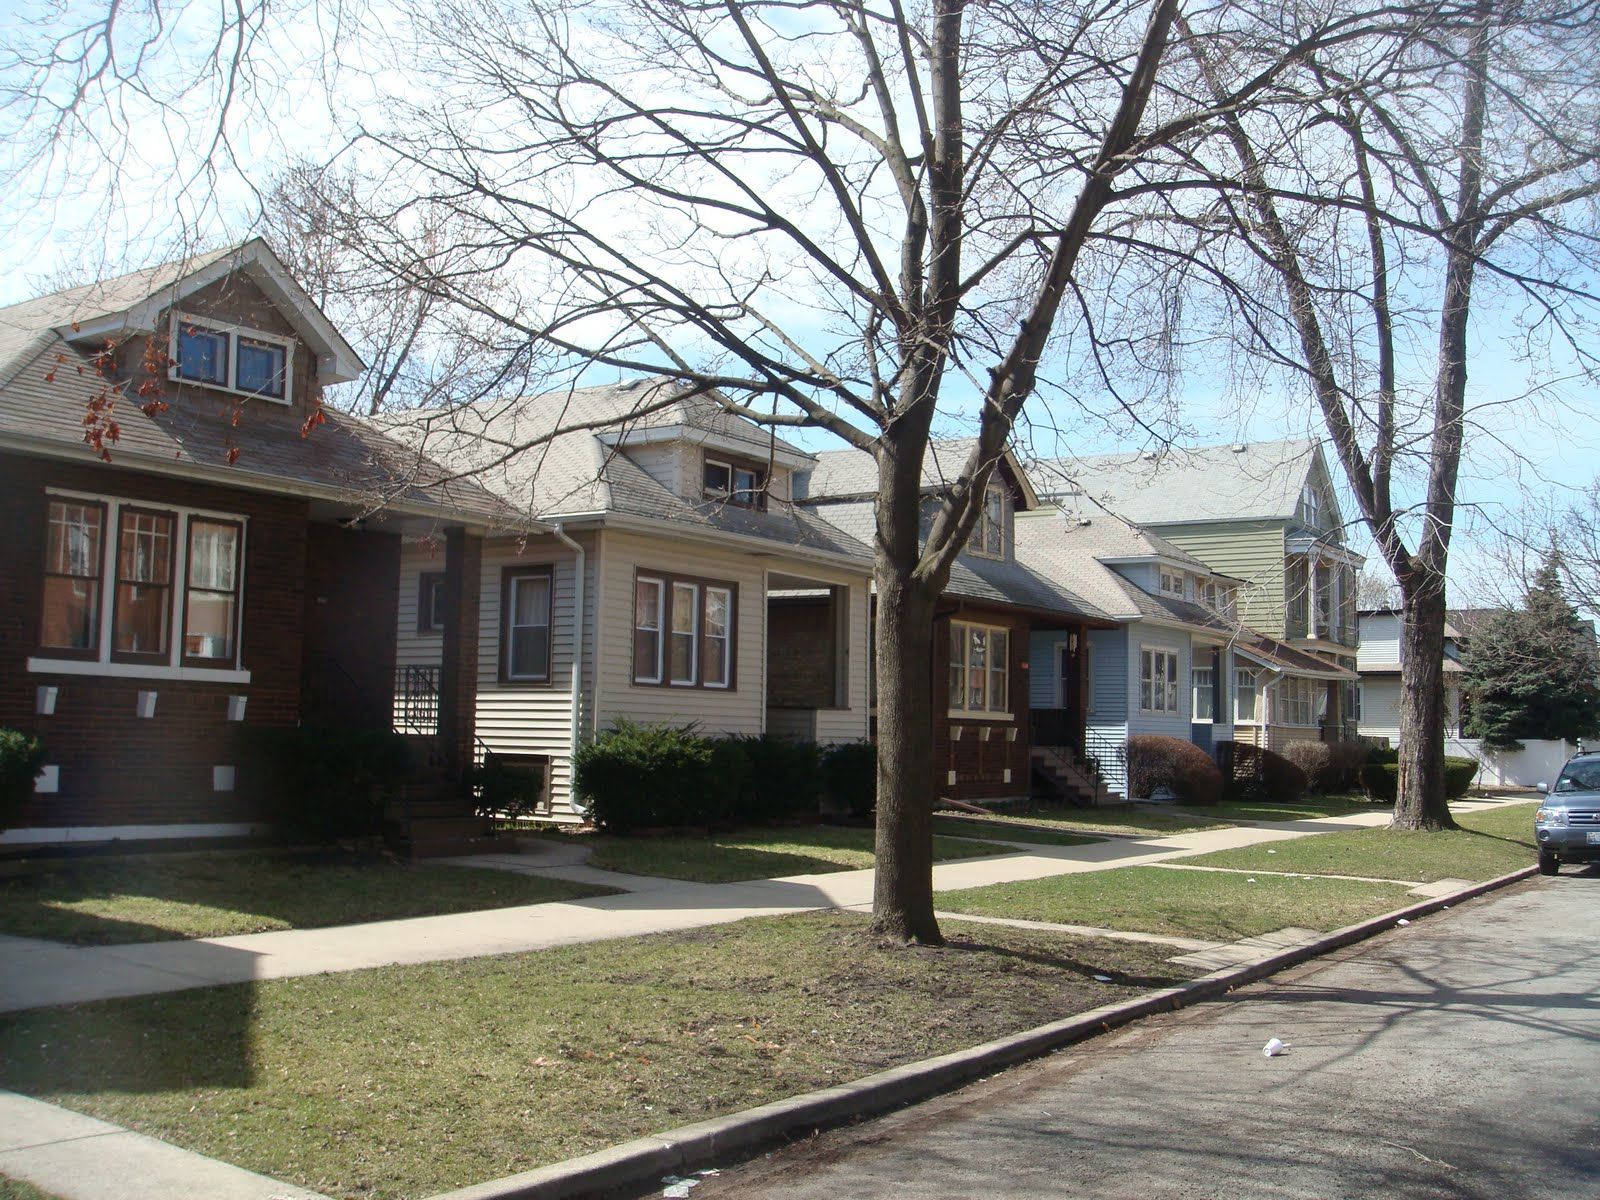 The chicago real estate local buy north side chicago for Chicago house for sale